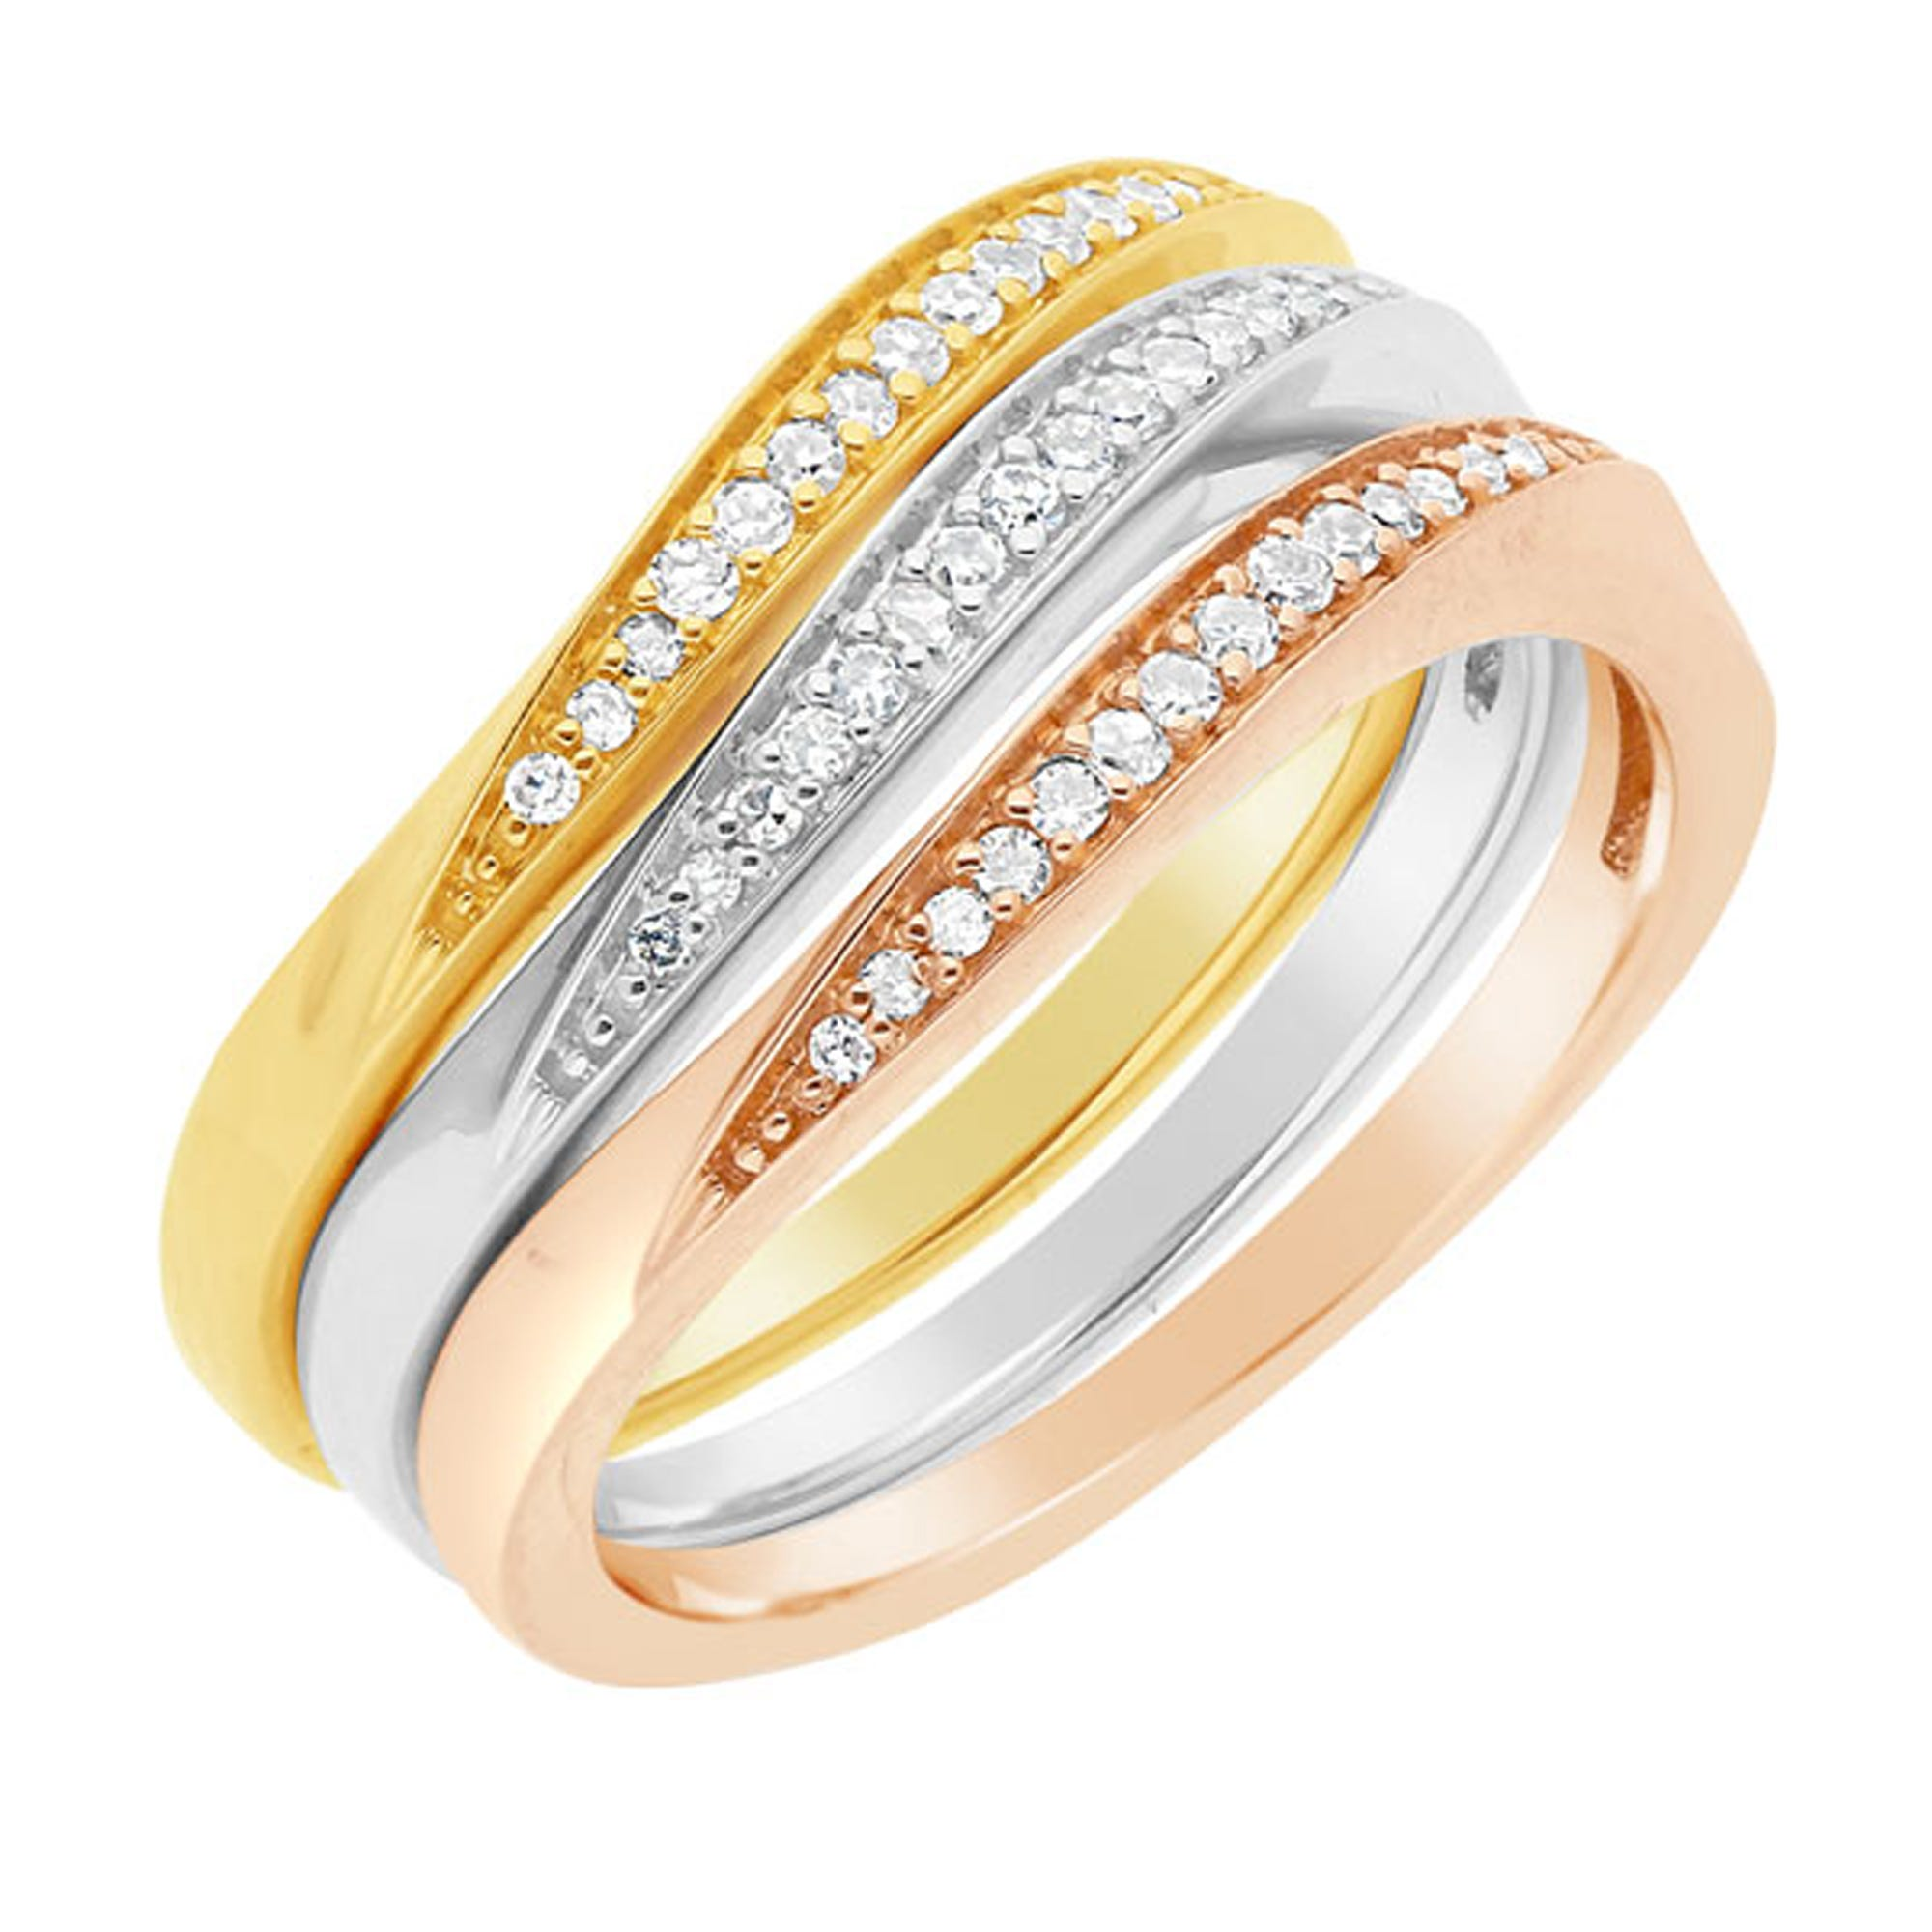 Set of Three Diamond Stackable Diamond Rings in 10k Gold